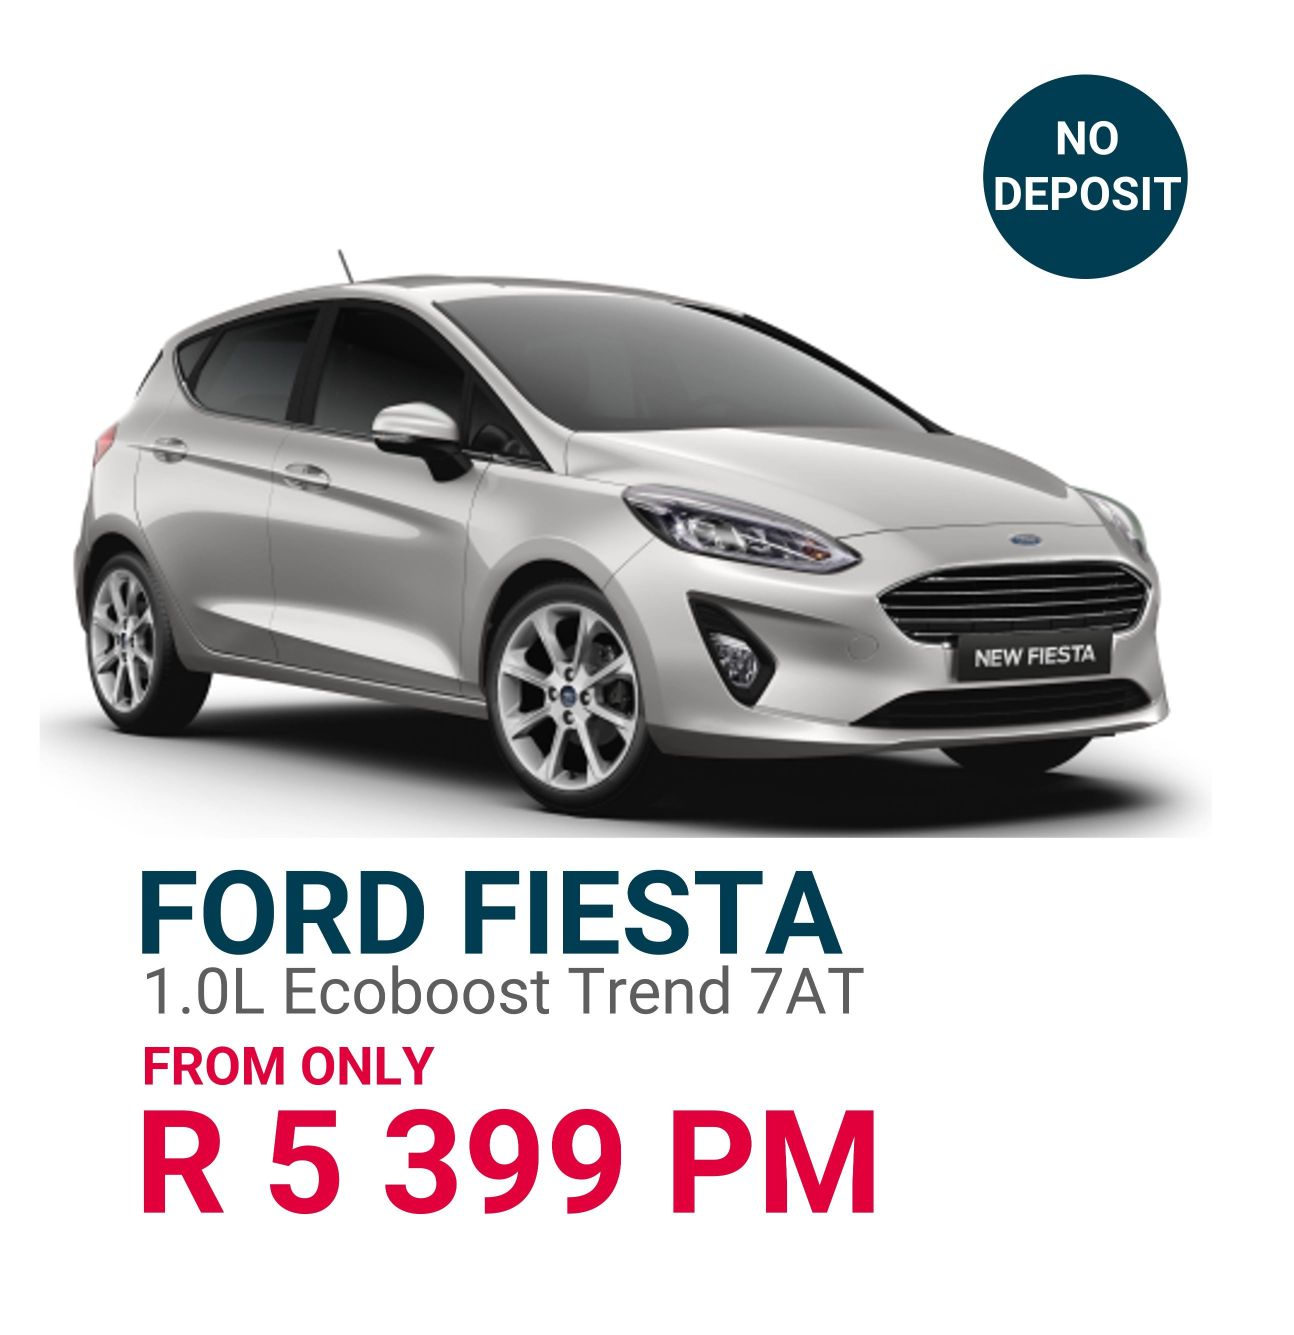 ford-fiesta-ecoboost-from-only-r5-399-pm